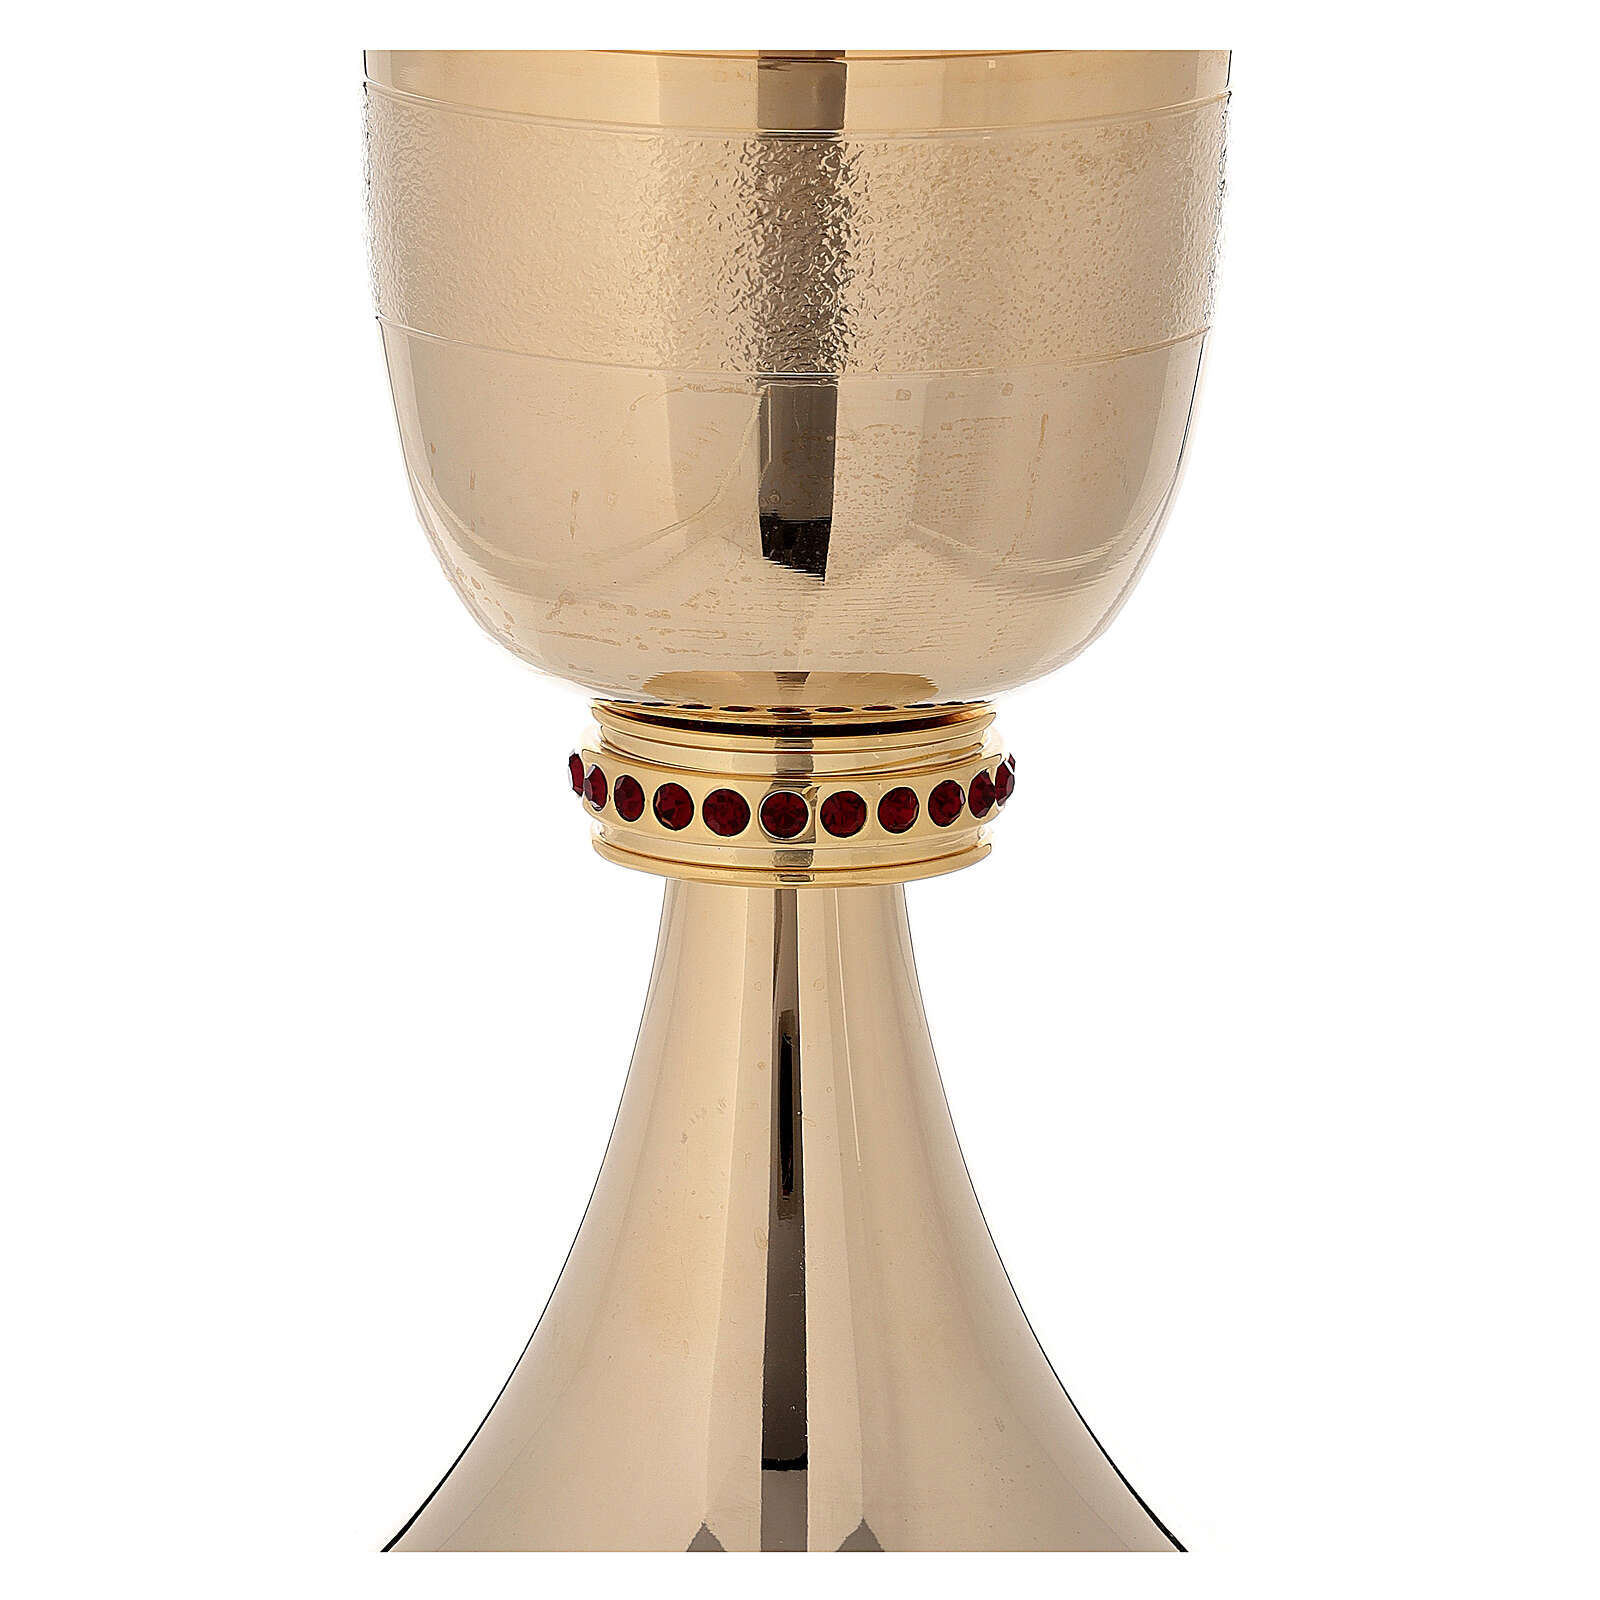 Chalice and ciborium 24-karat gold plated brass red stones and rough finish 4